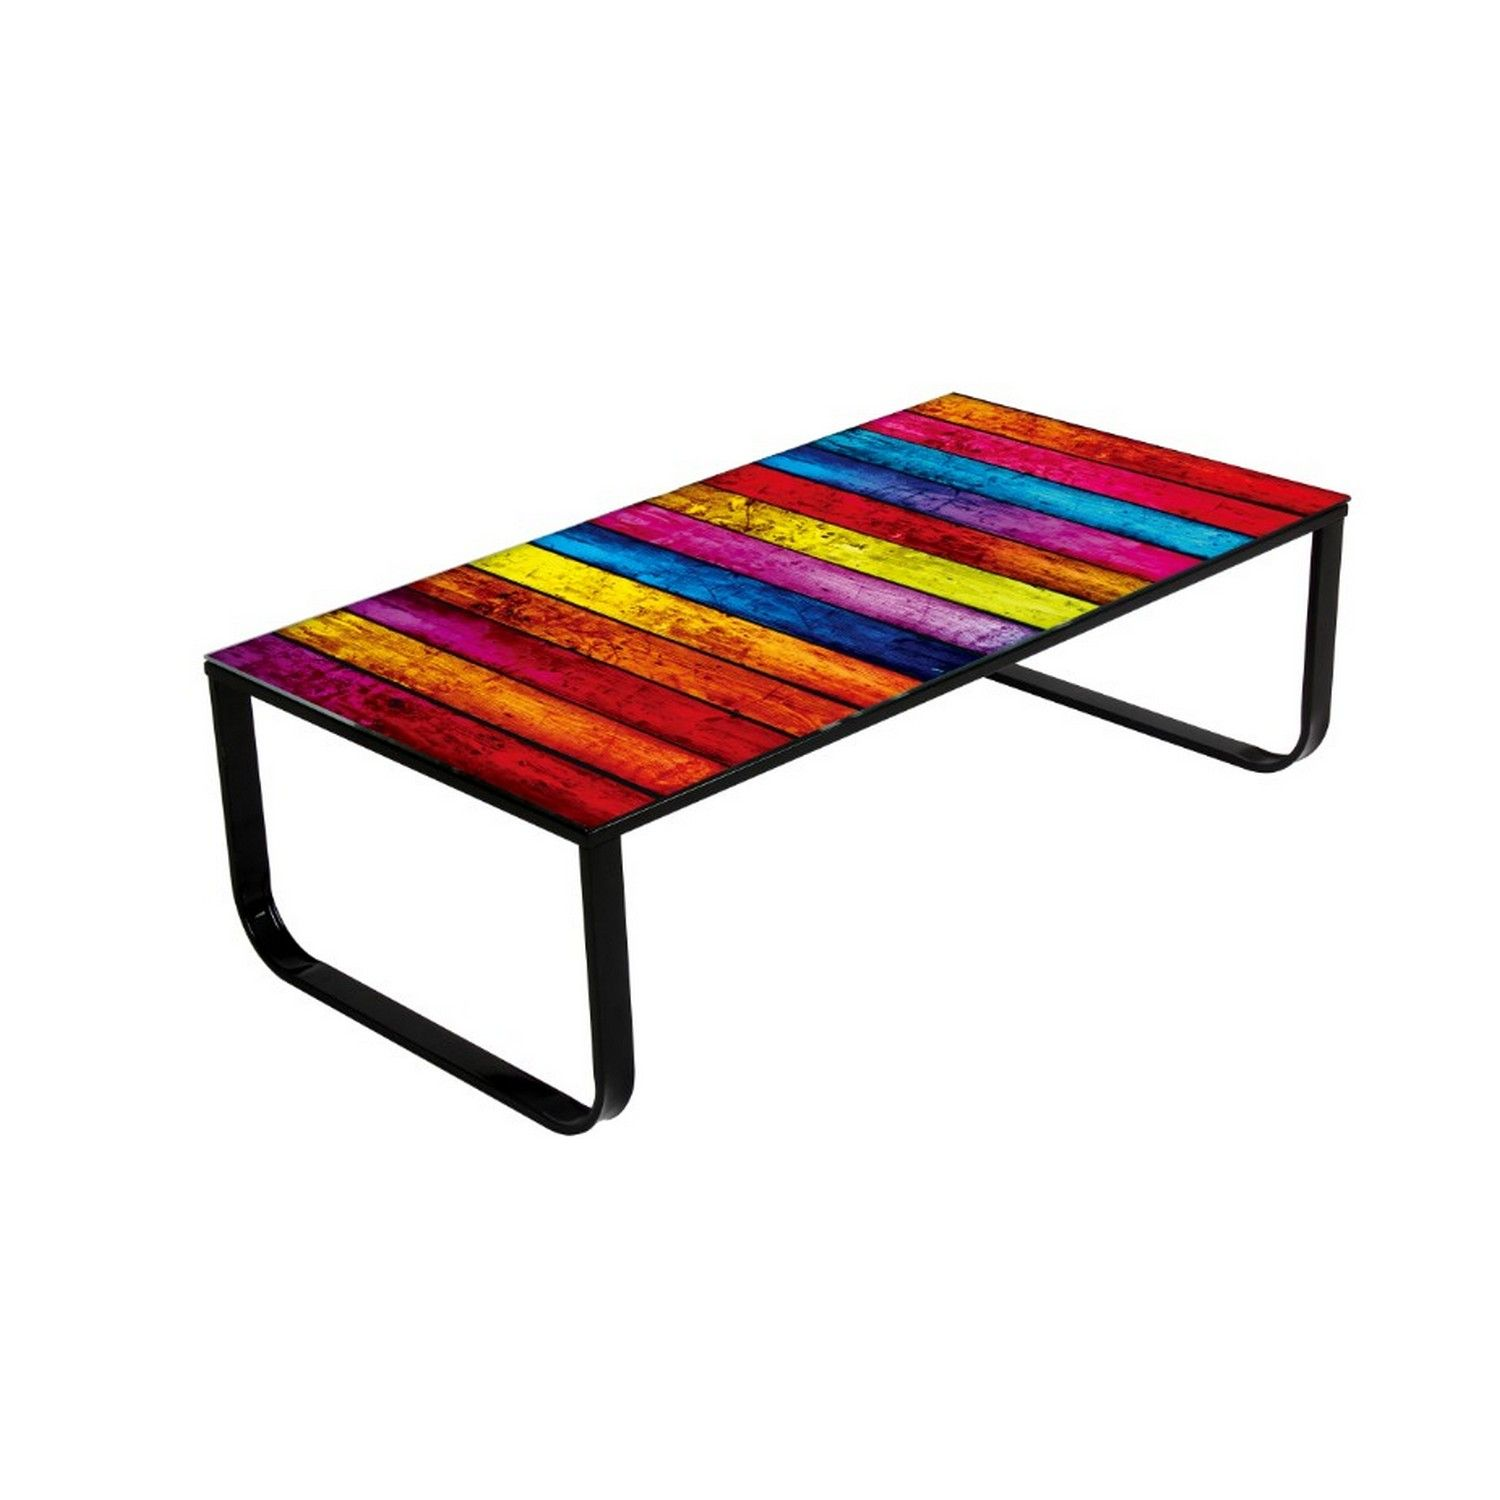 Noda Rainbow Glass Coffee Table Funky Coffee Tables Colorful Furniture Living Room Living Room Furniture Sale [ 1500 x 1500 Pixel ]